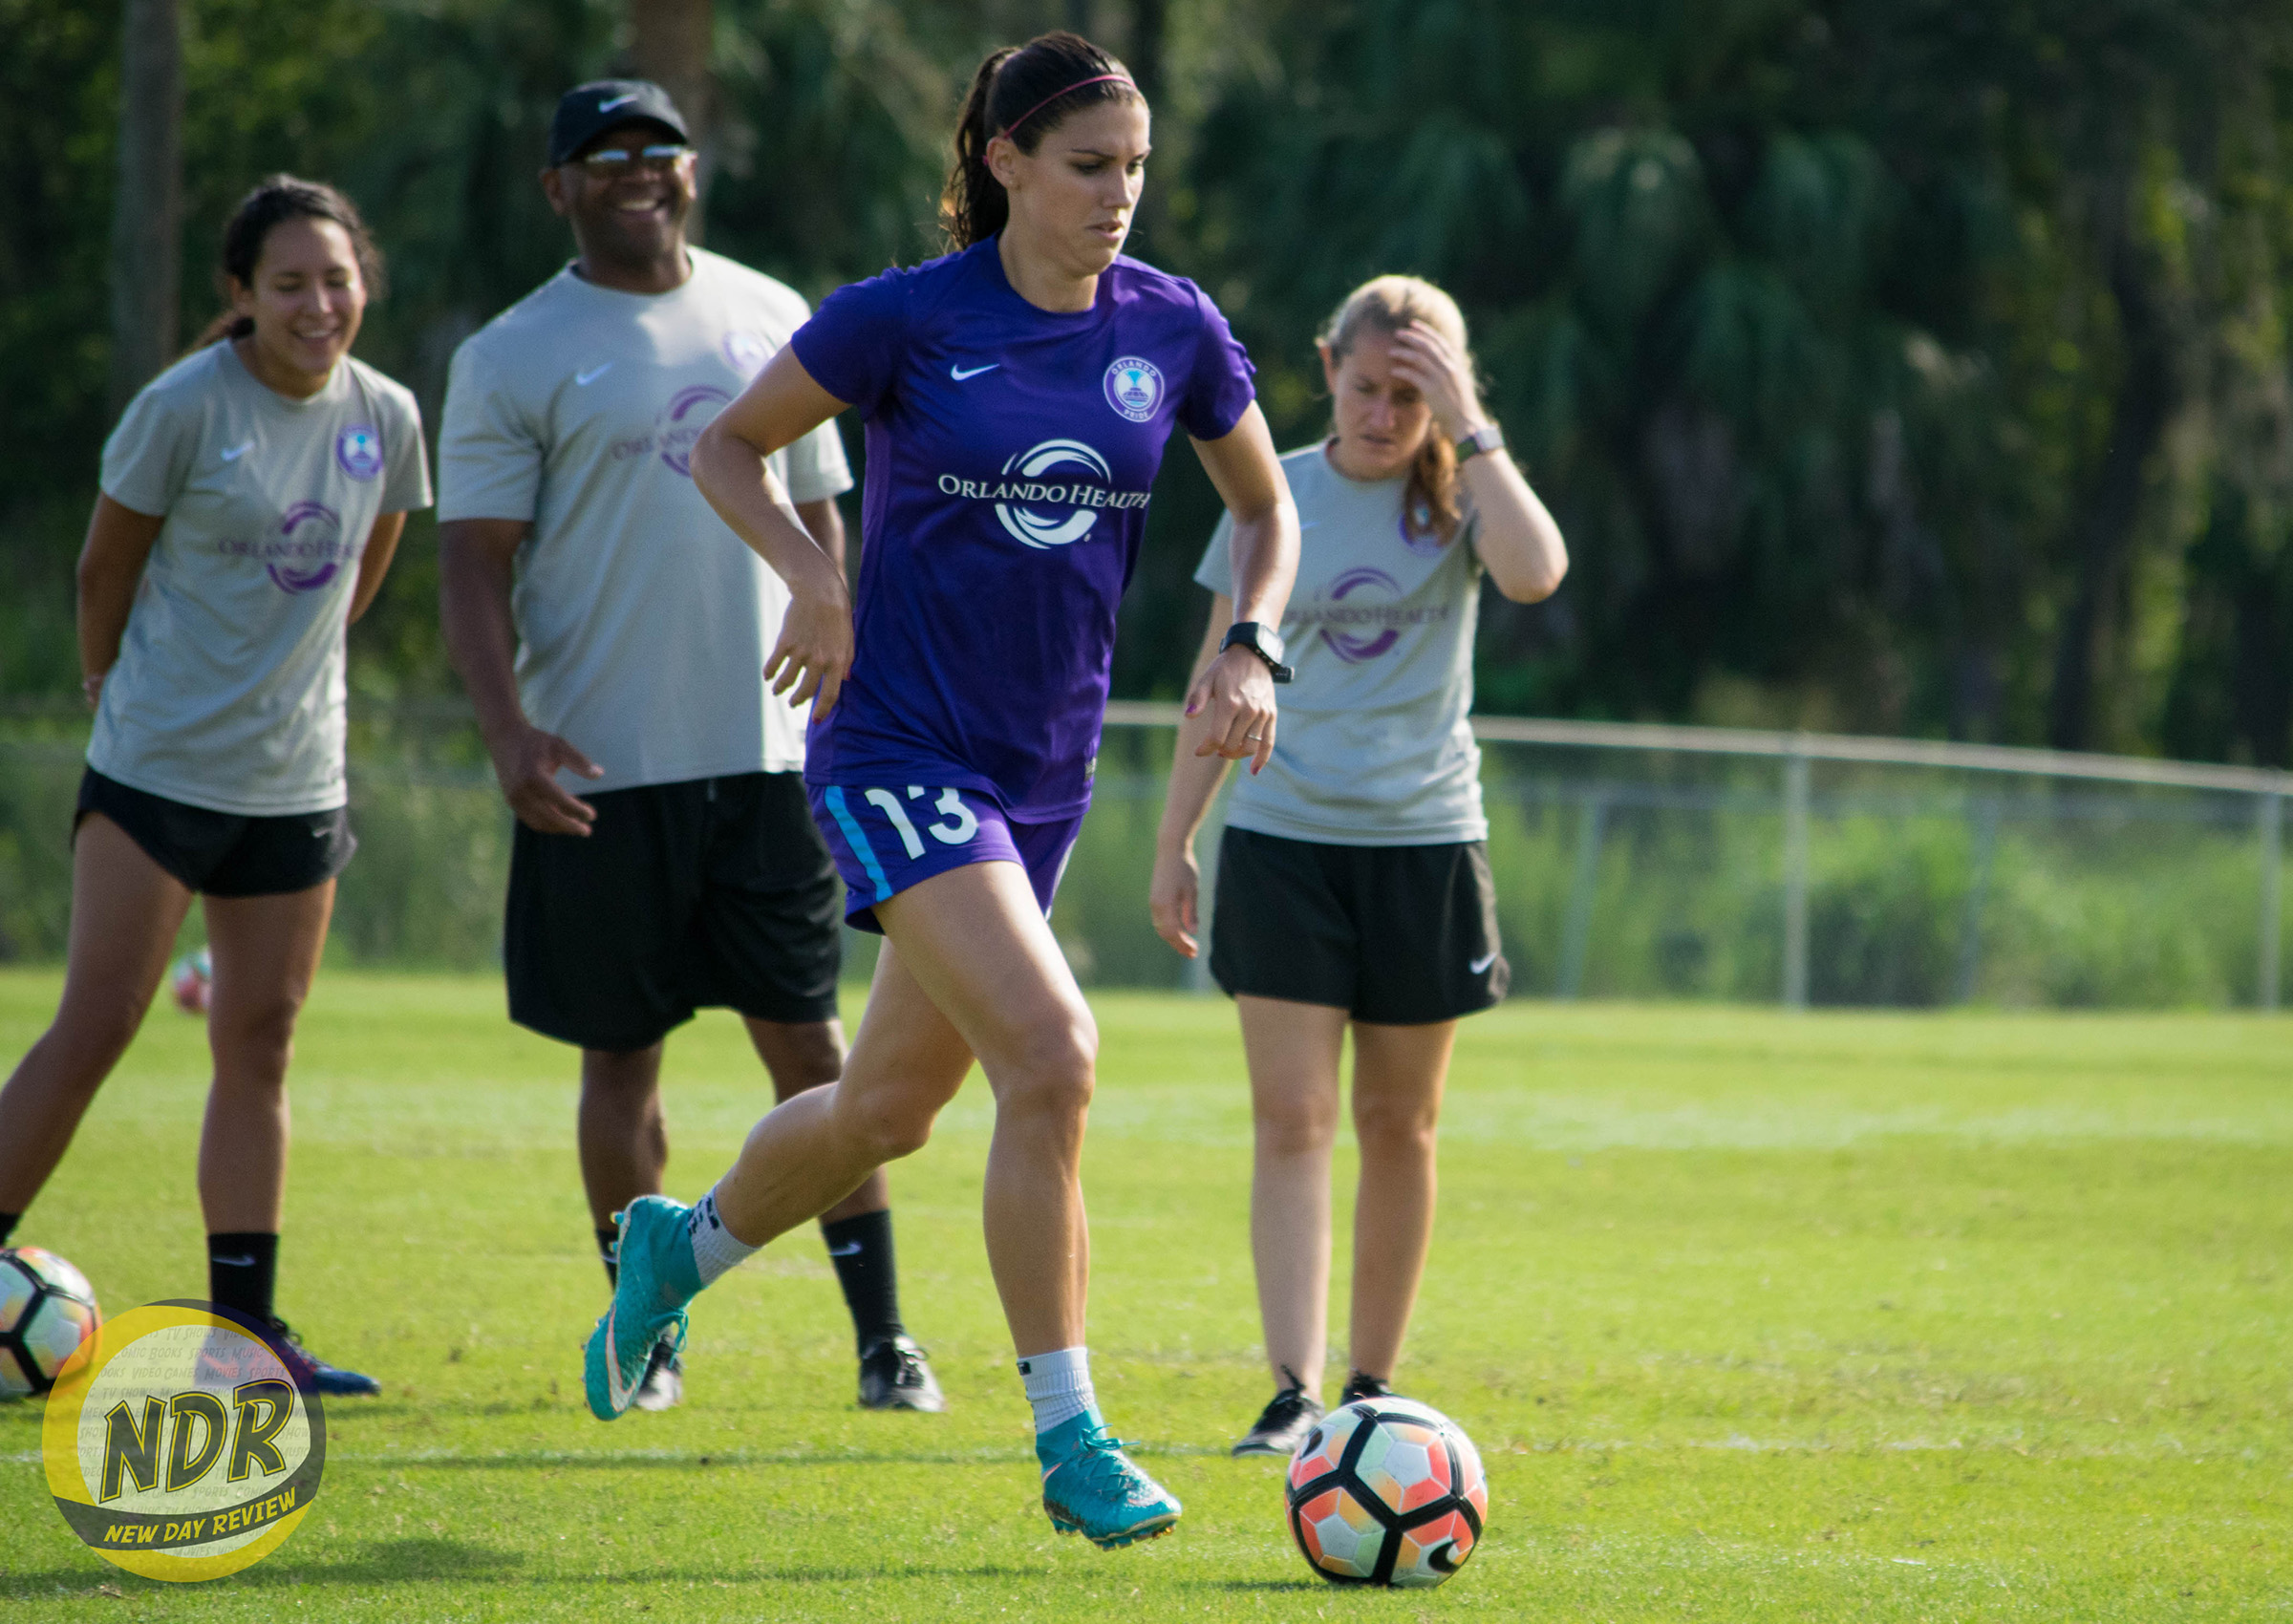 837d3d6cc0d Orlando Pride forward Alex Morgan dribbles the ball during a training  session at Seminole Soccer Complex on Friday